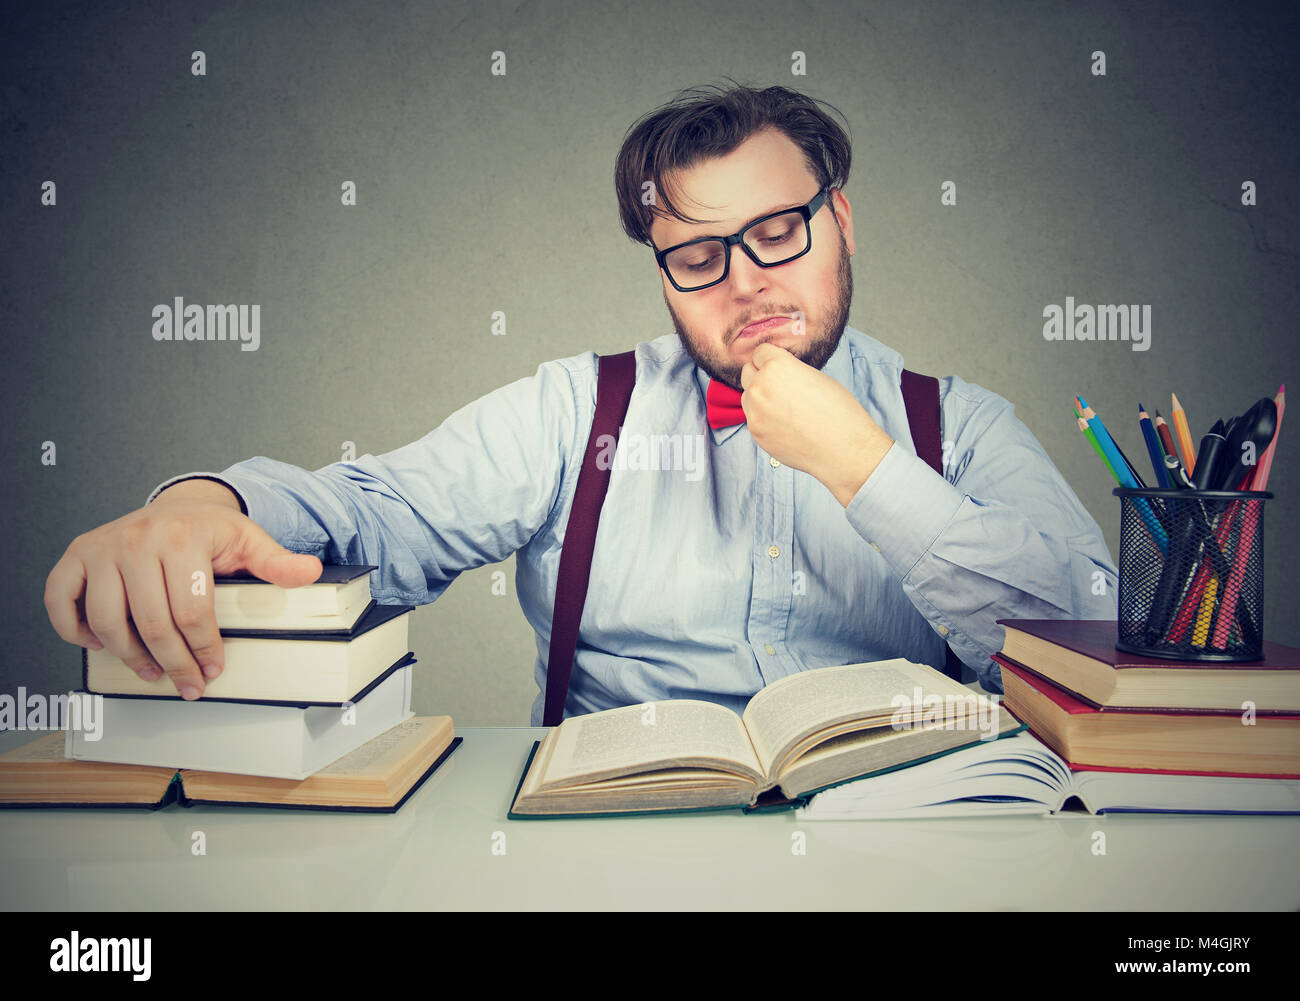 Young chunky man sitting at desk and reading books - Stock Image